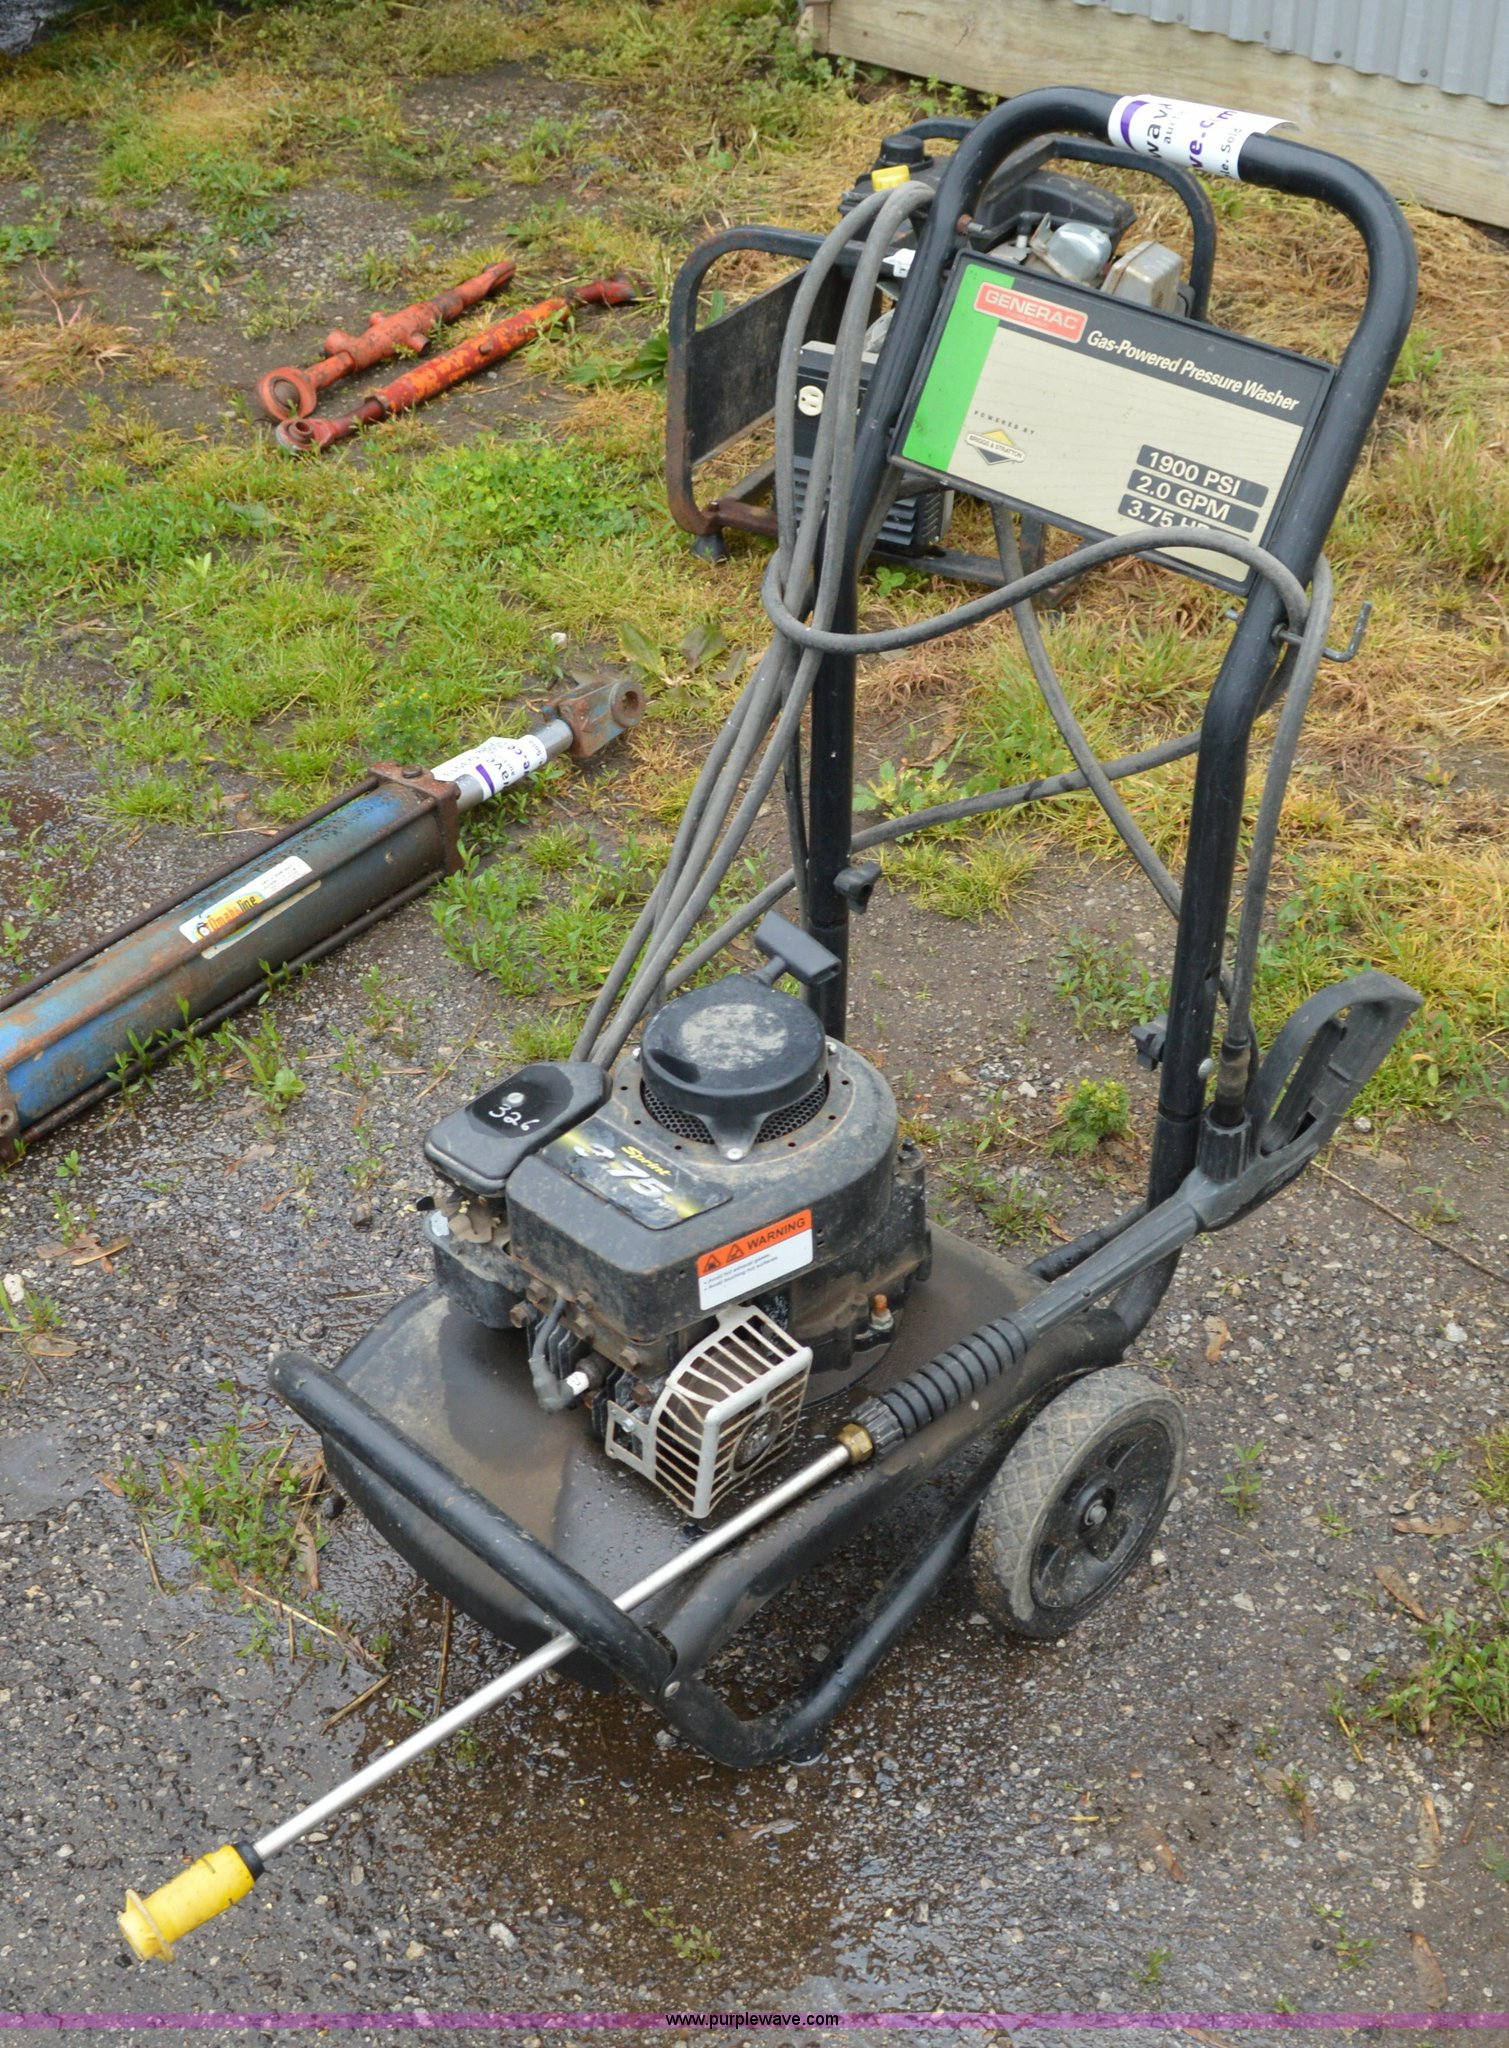 hight resolution of g3510 image for item g3510 generac pressure washer